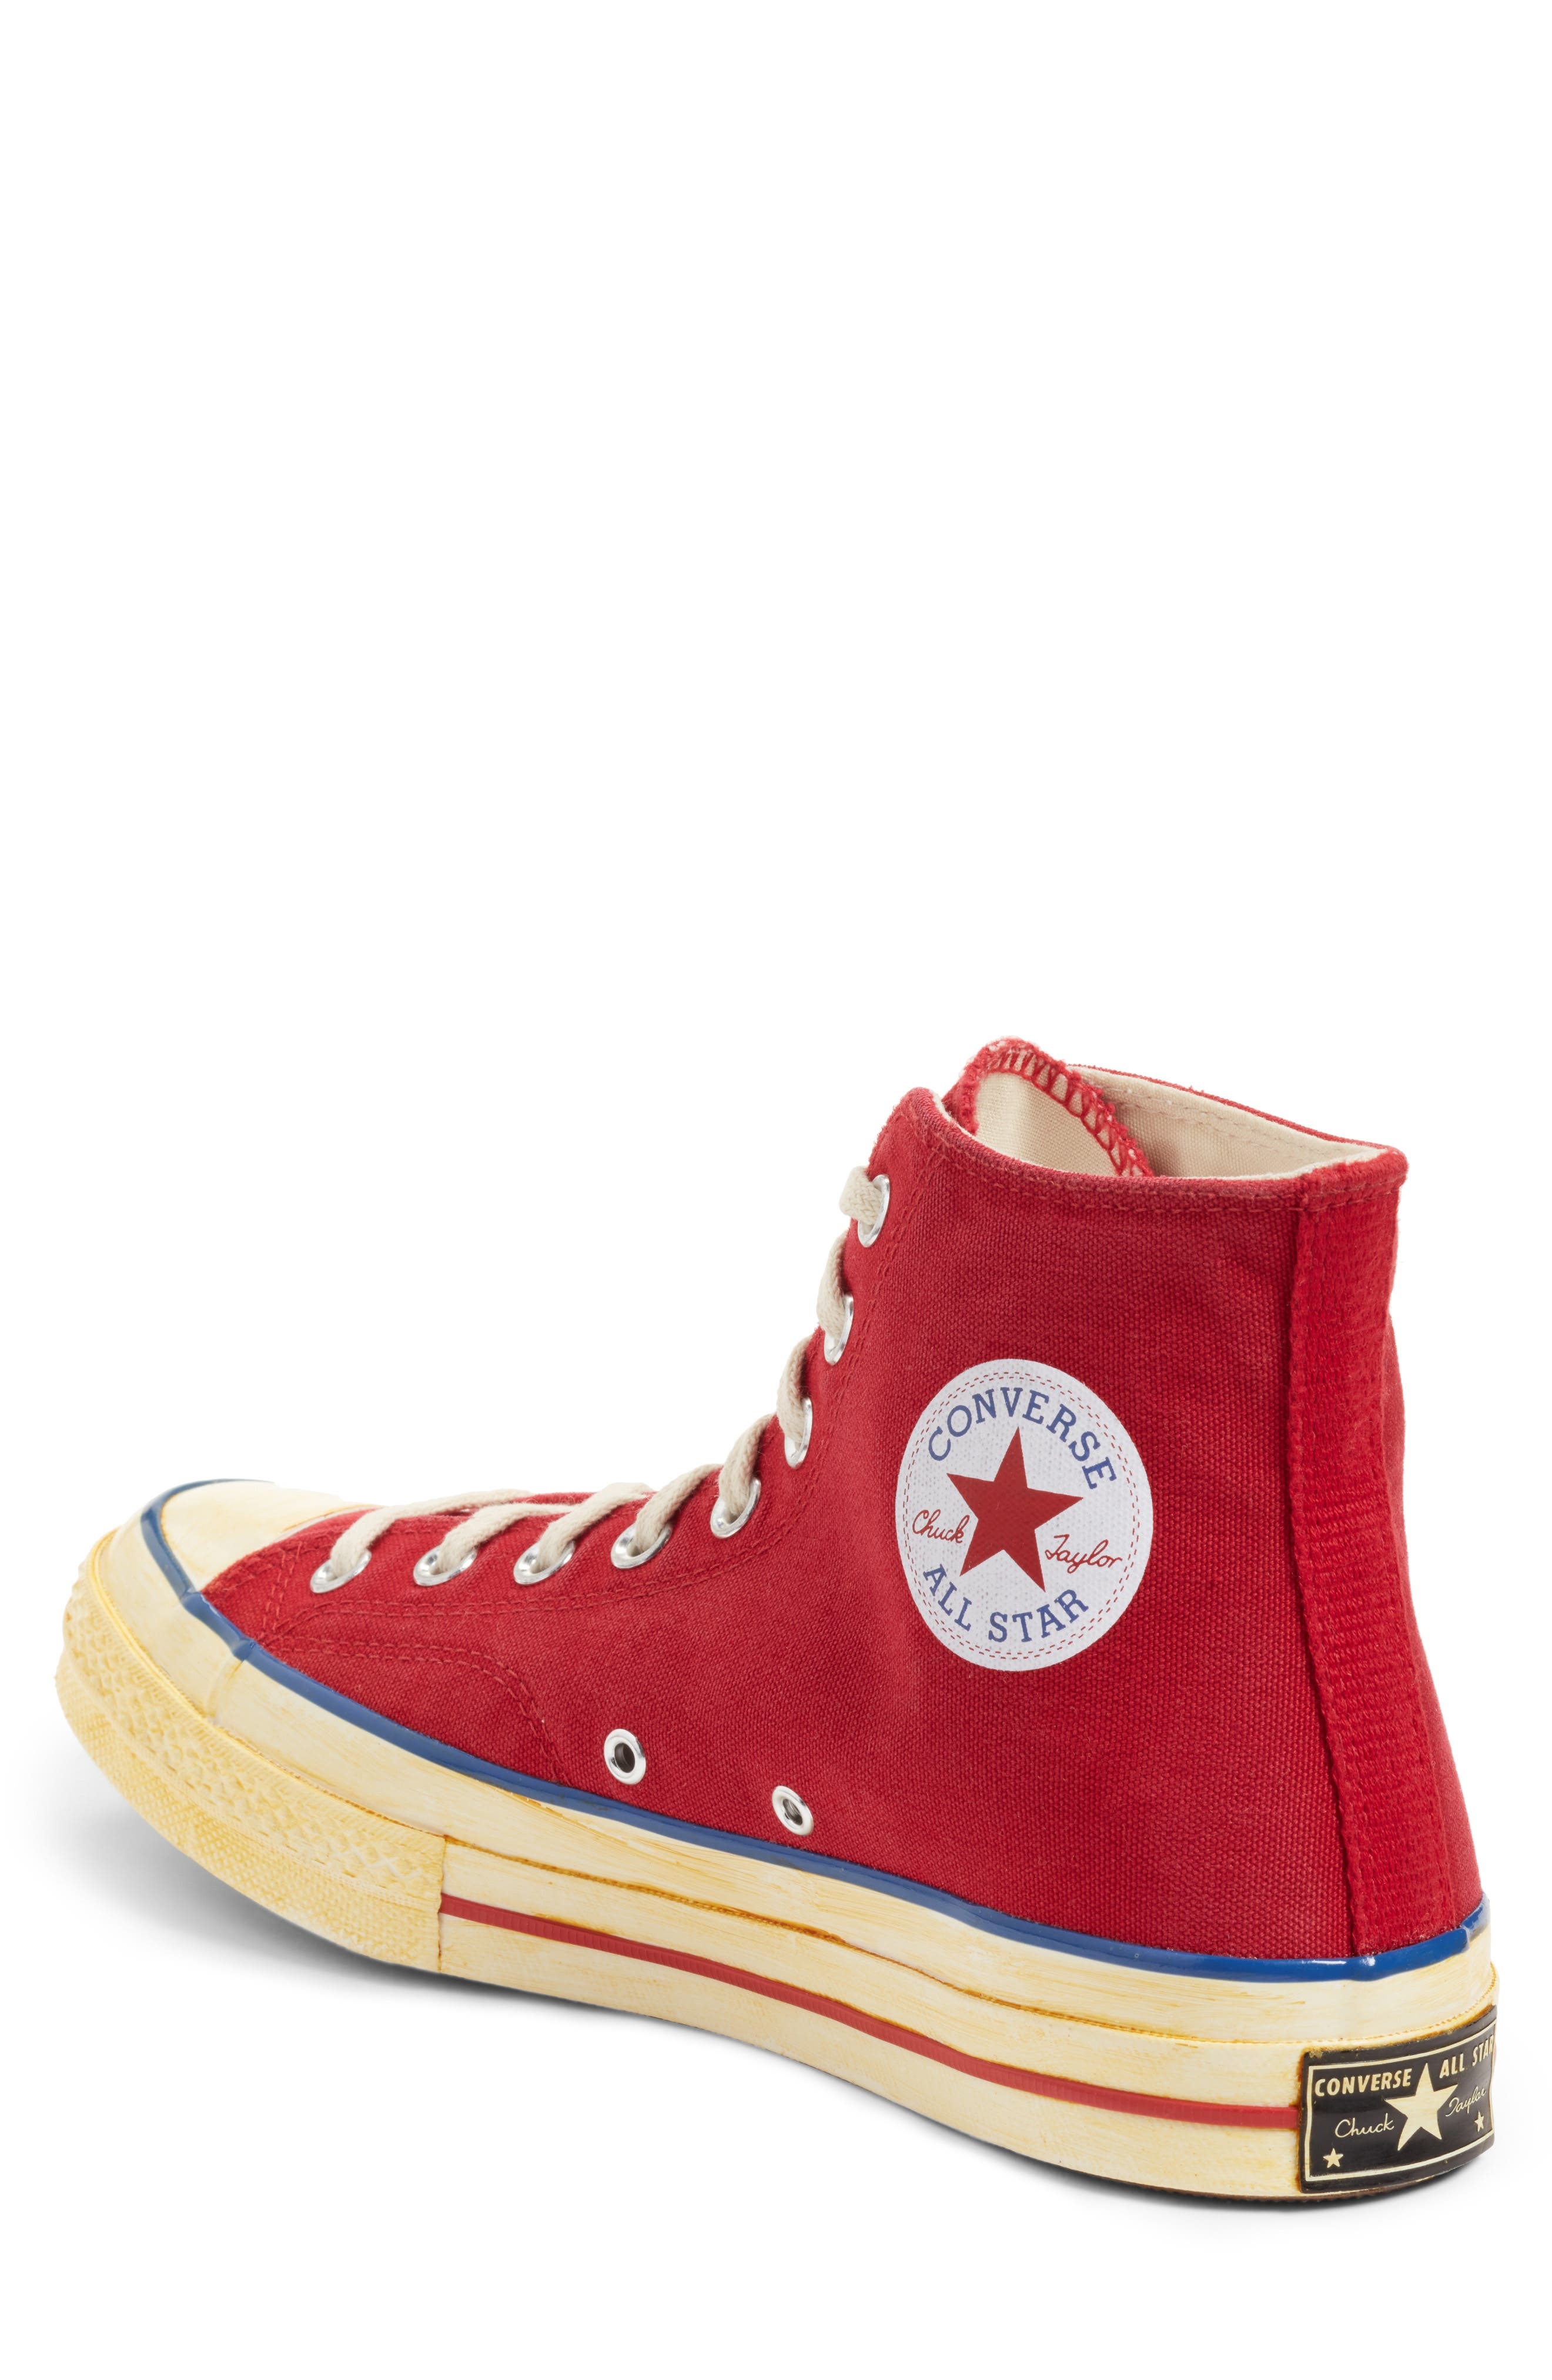 Chuck Taylor<sup>®</sup> All Star<sup>®</sup> 70 High Top Sneaker,                             Alternate thumbnail 3, color,                             Red